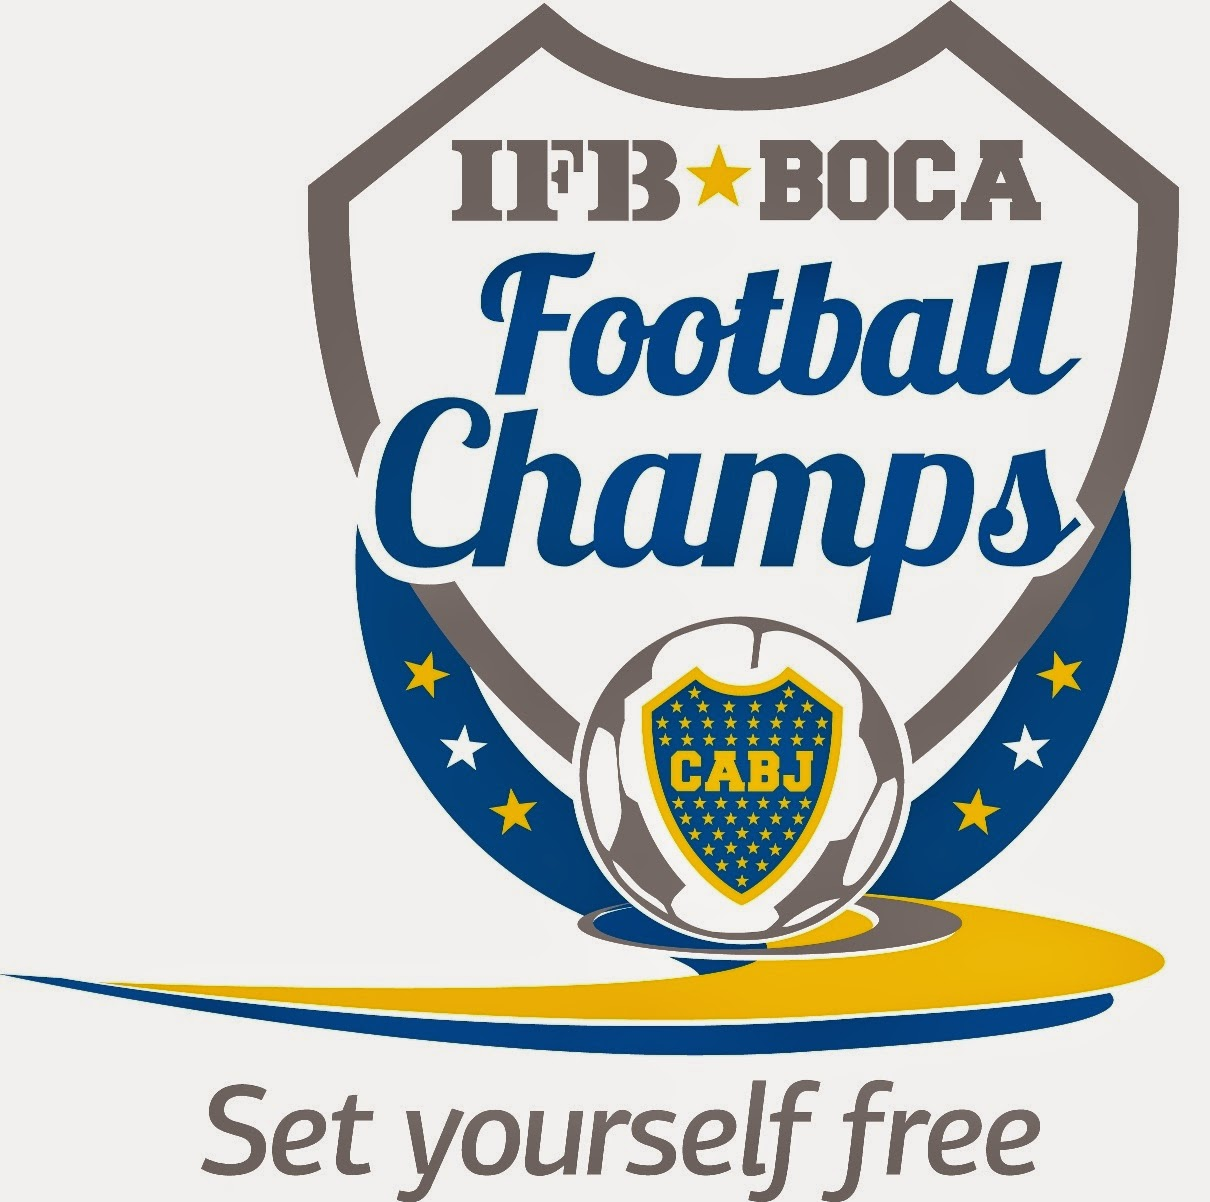 IFB Boca Football Champs finals held in Goa